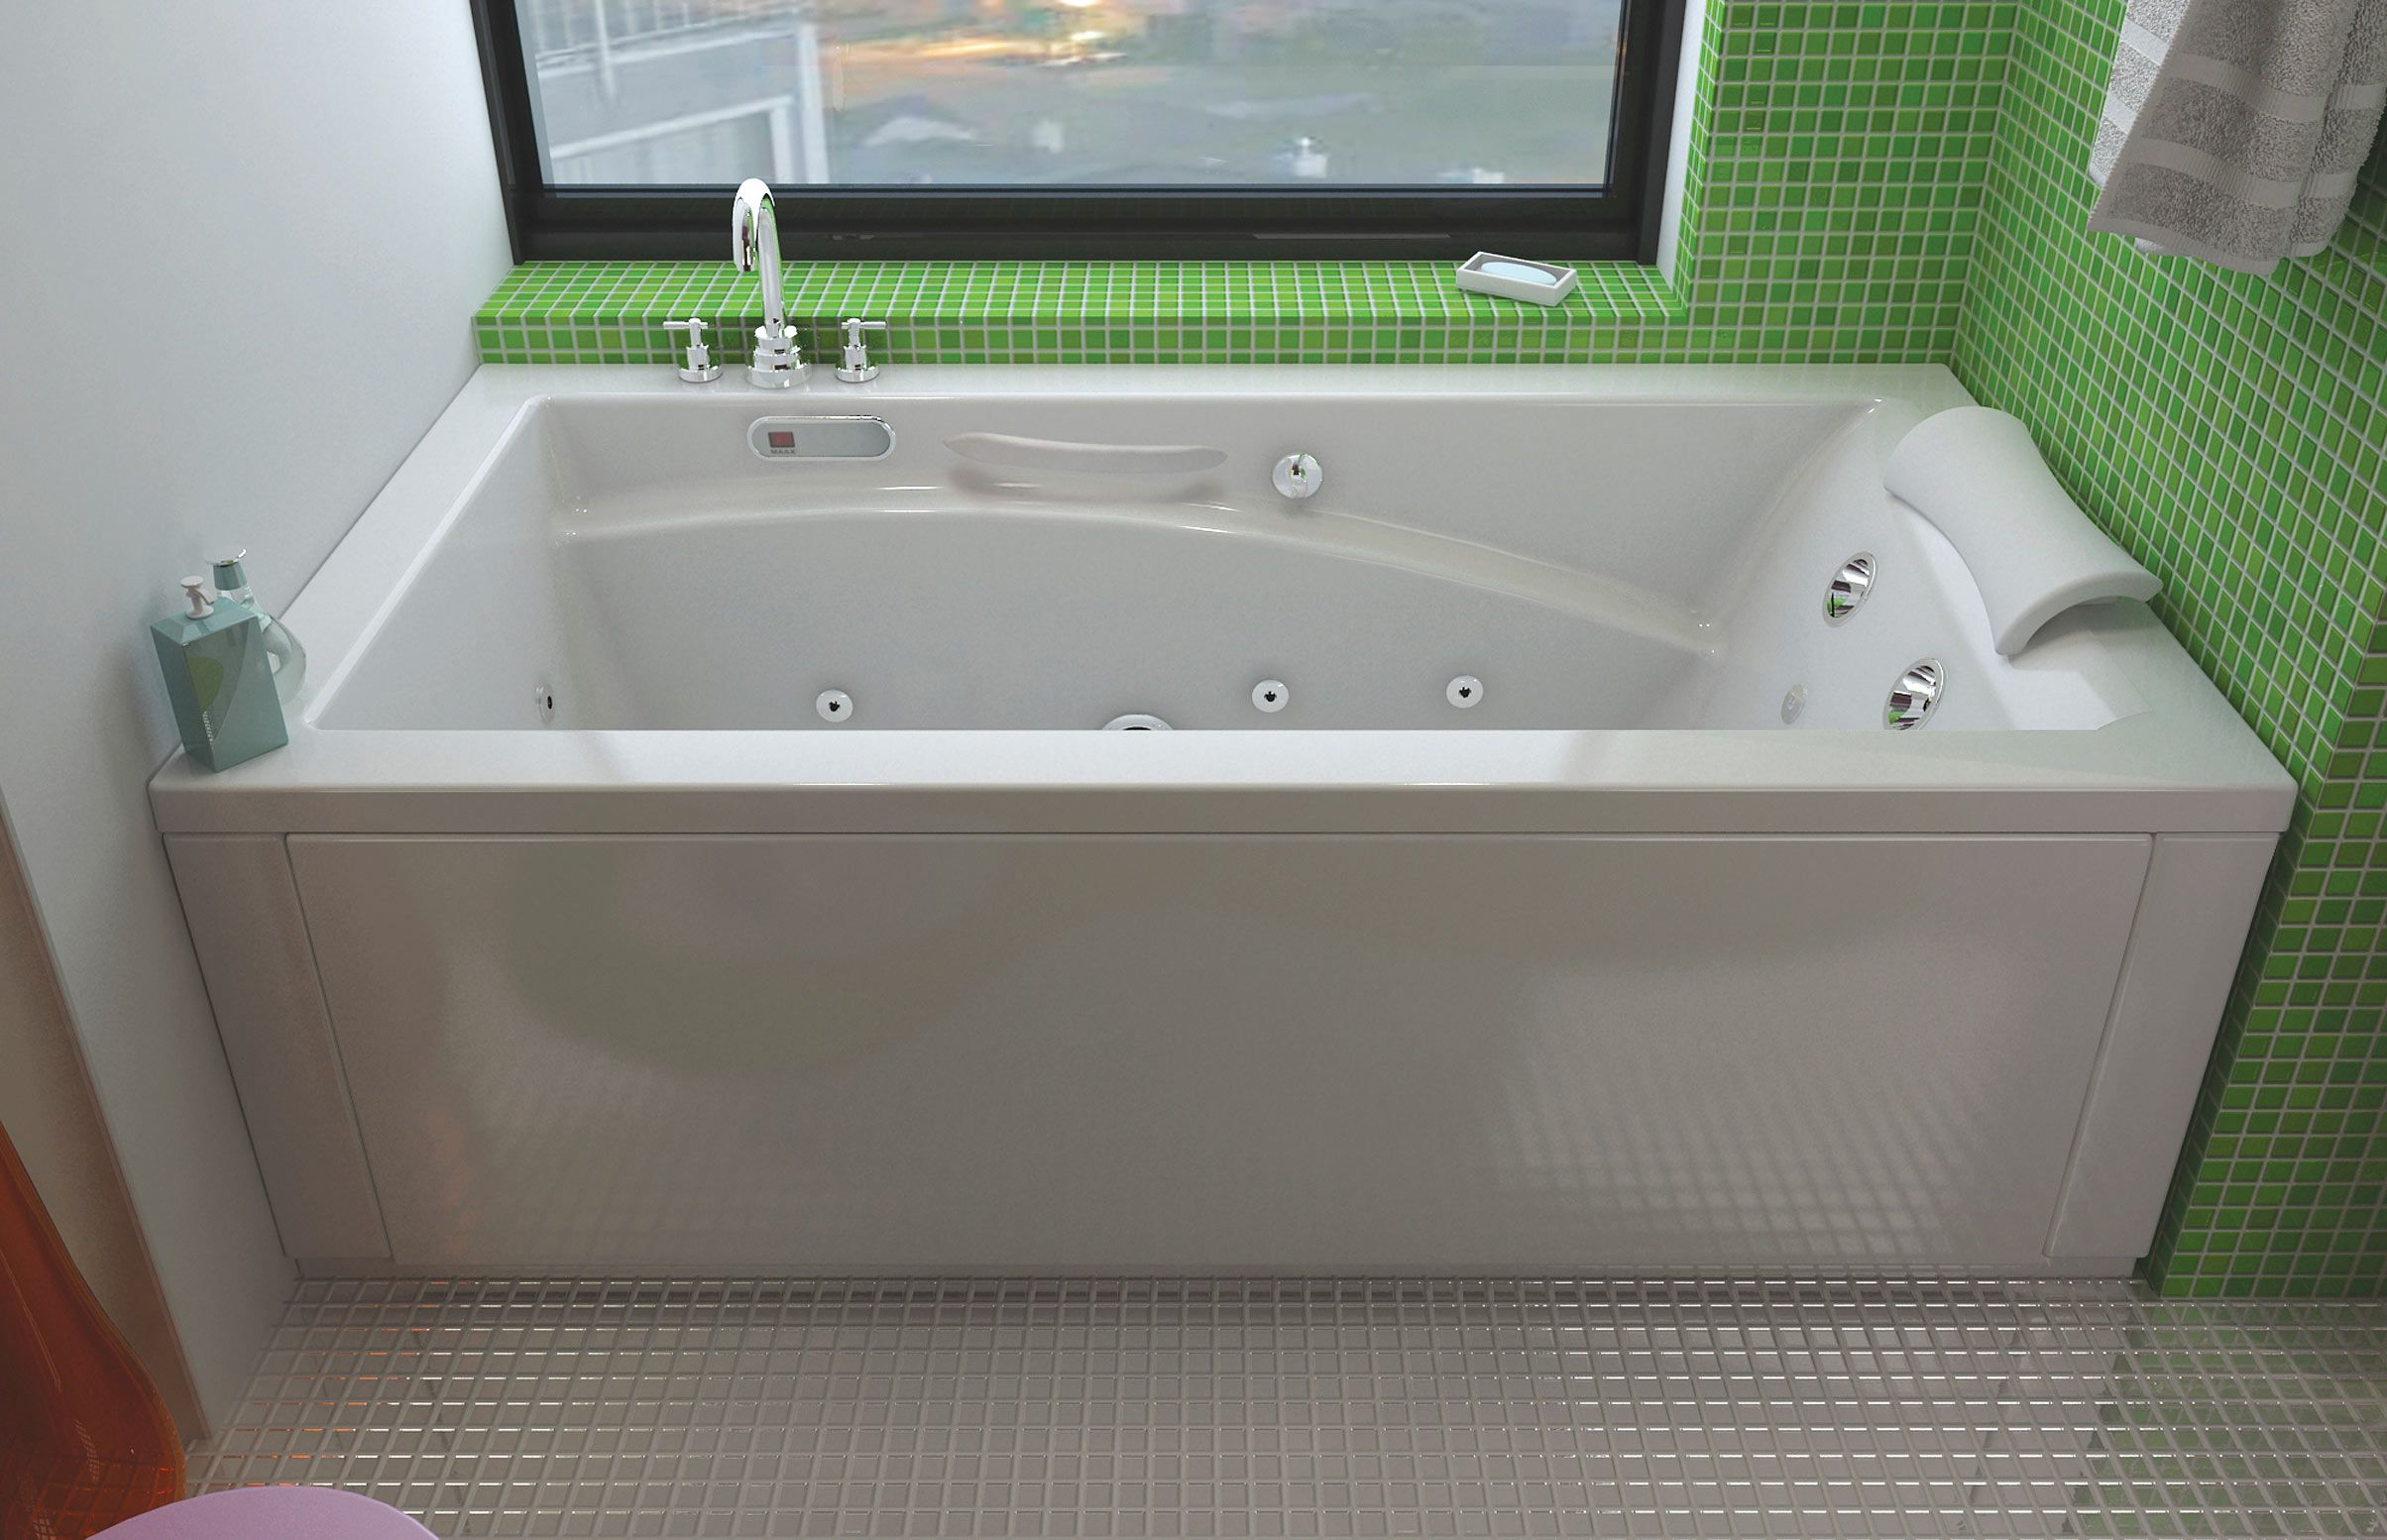 Optik end drain alcove or drop in or undermount or for Built in tub dimensions